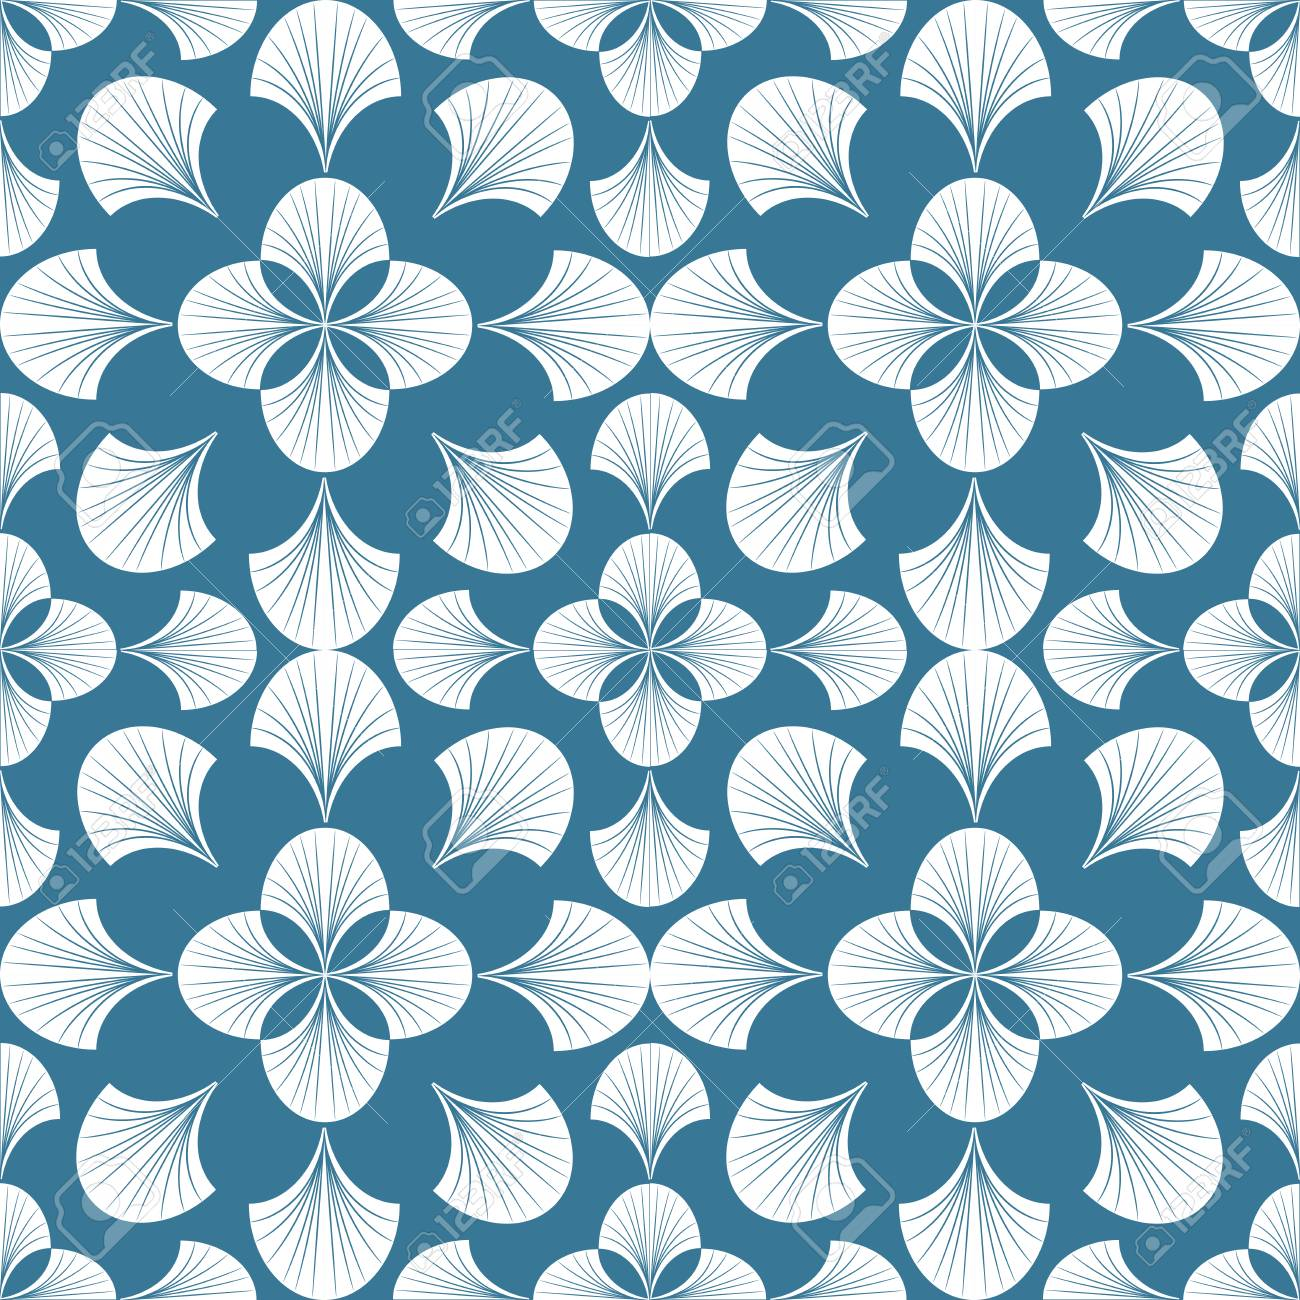 Floral Pattern Wallpaper Baroque Damask Seamless Vector Background Blue And White Ornament Graphic